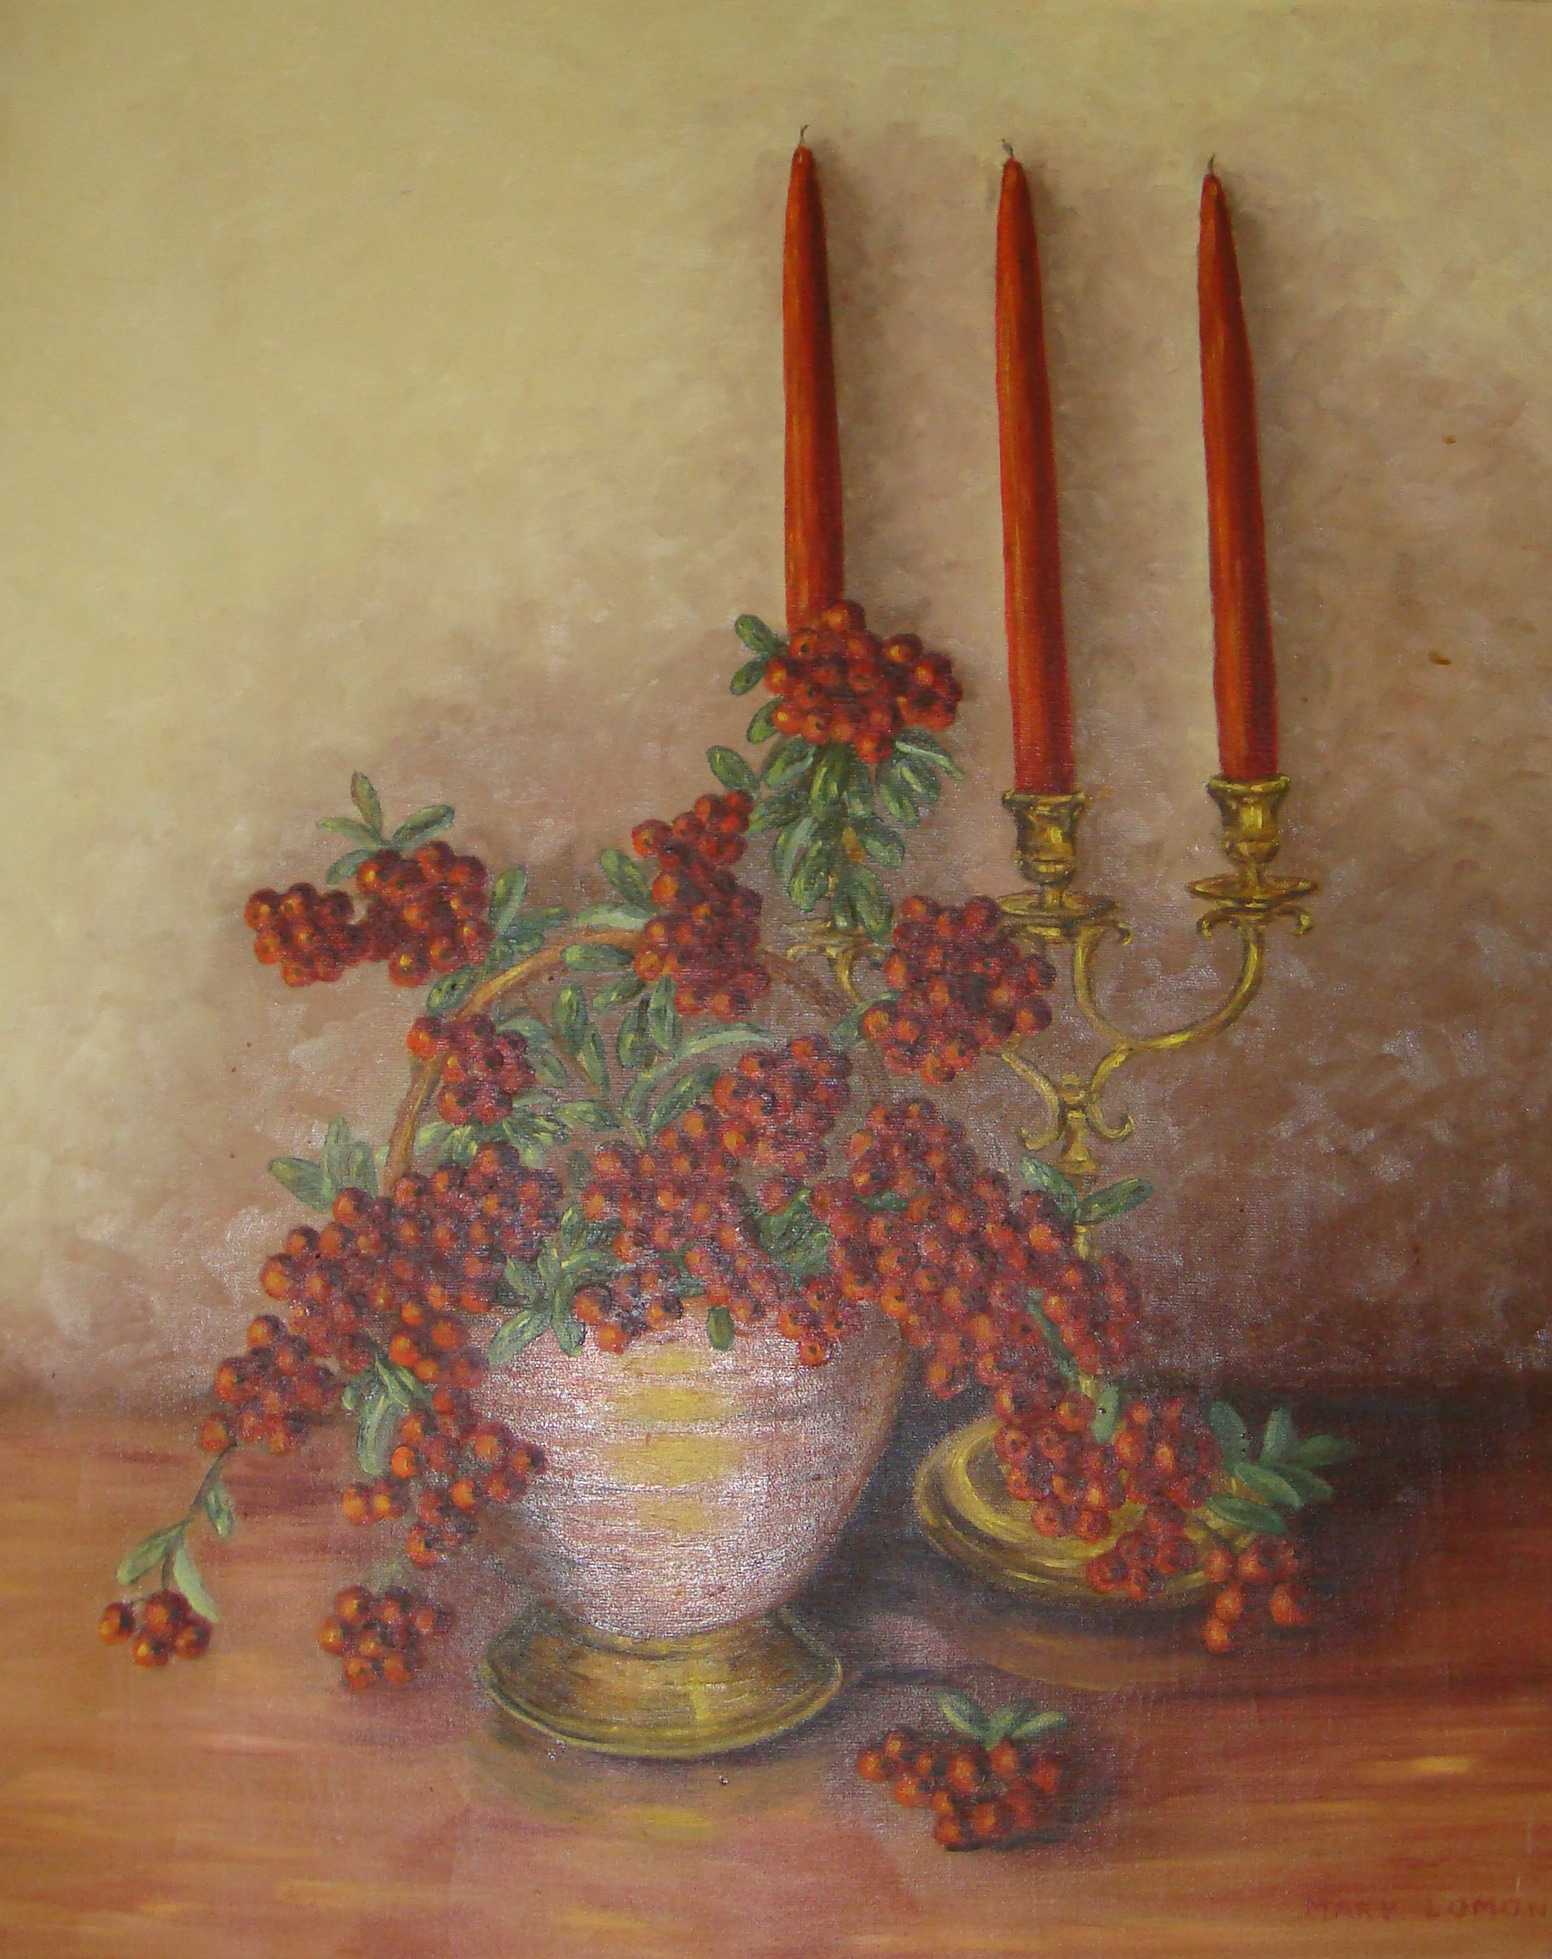 Oil painting by Mary Lomonaco